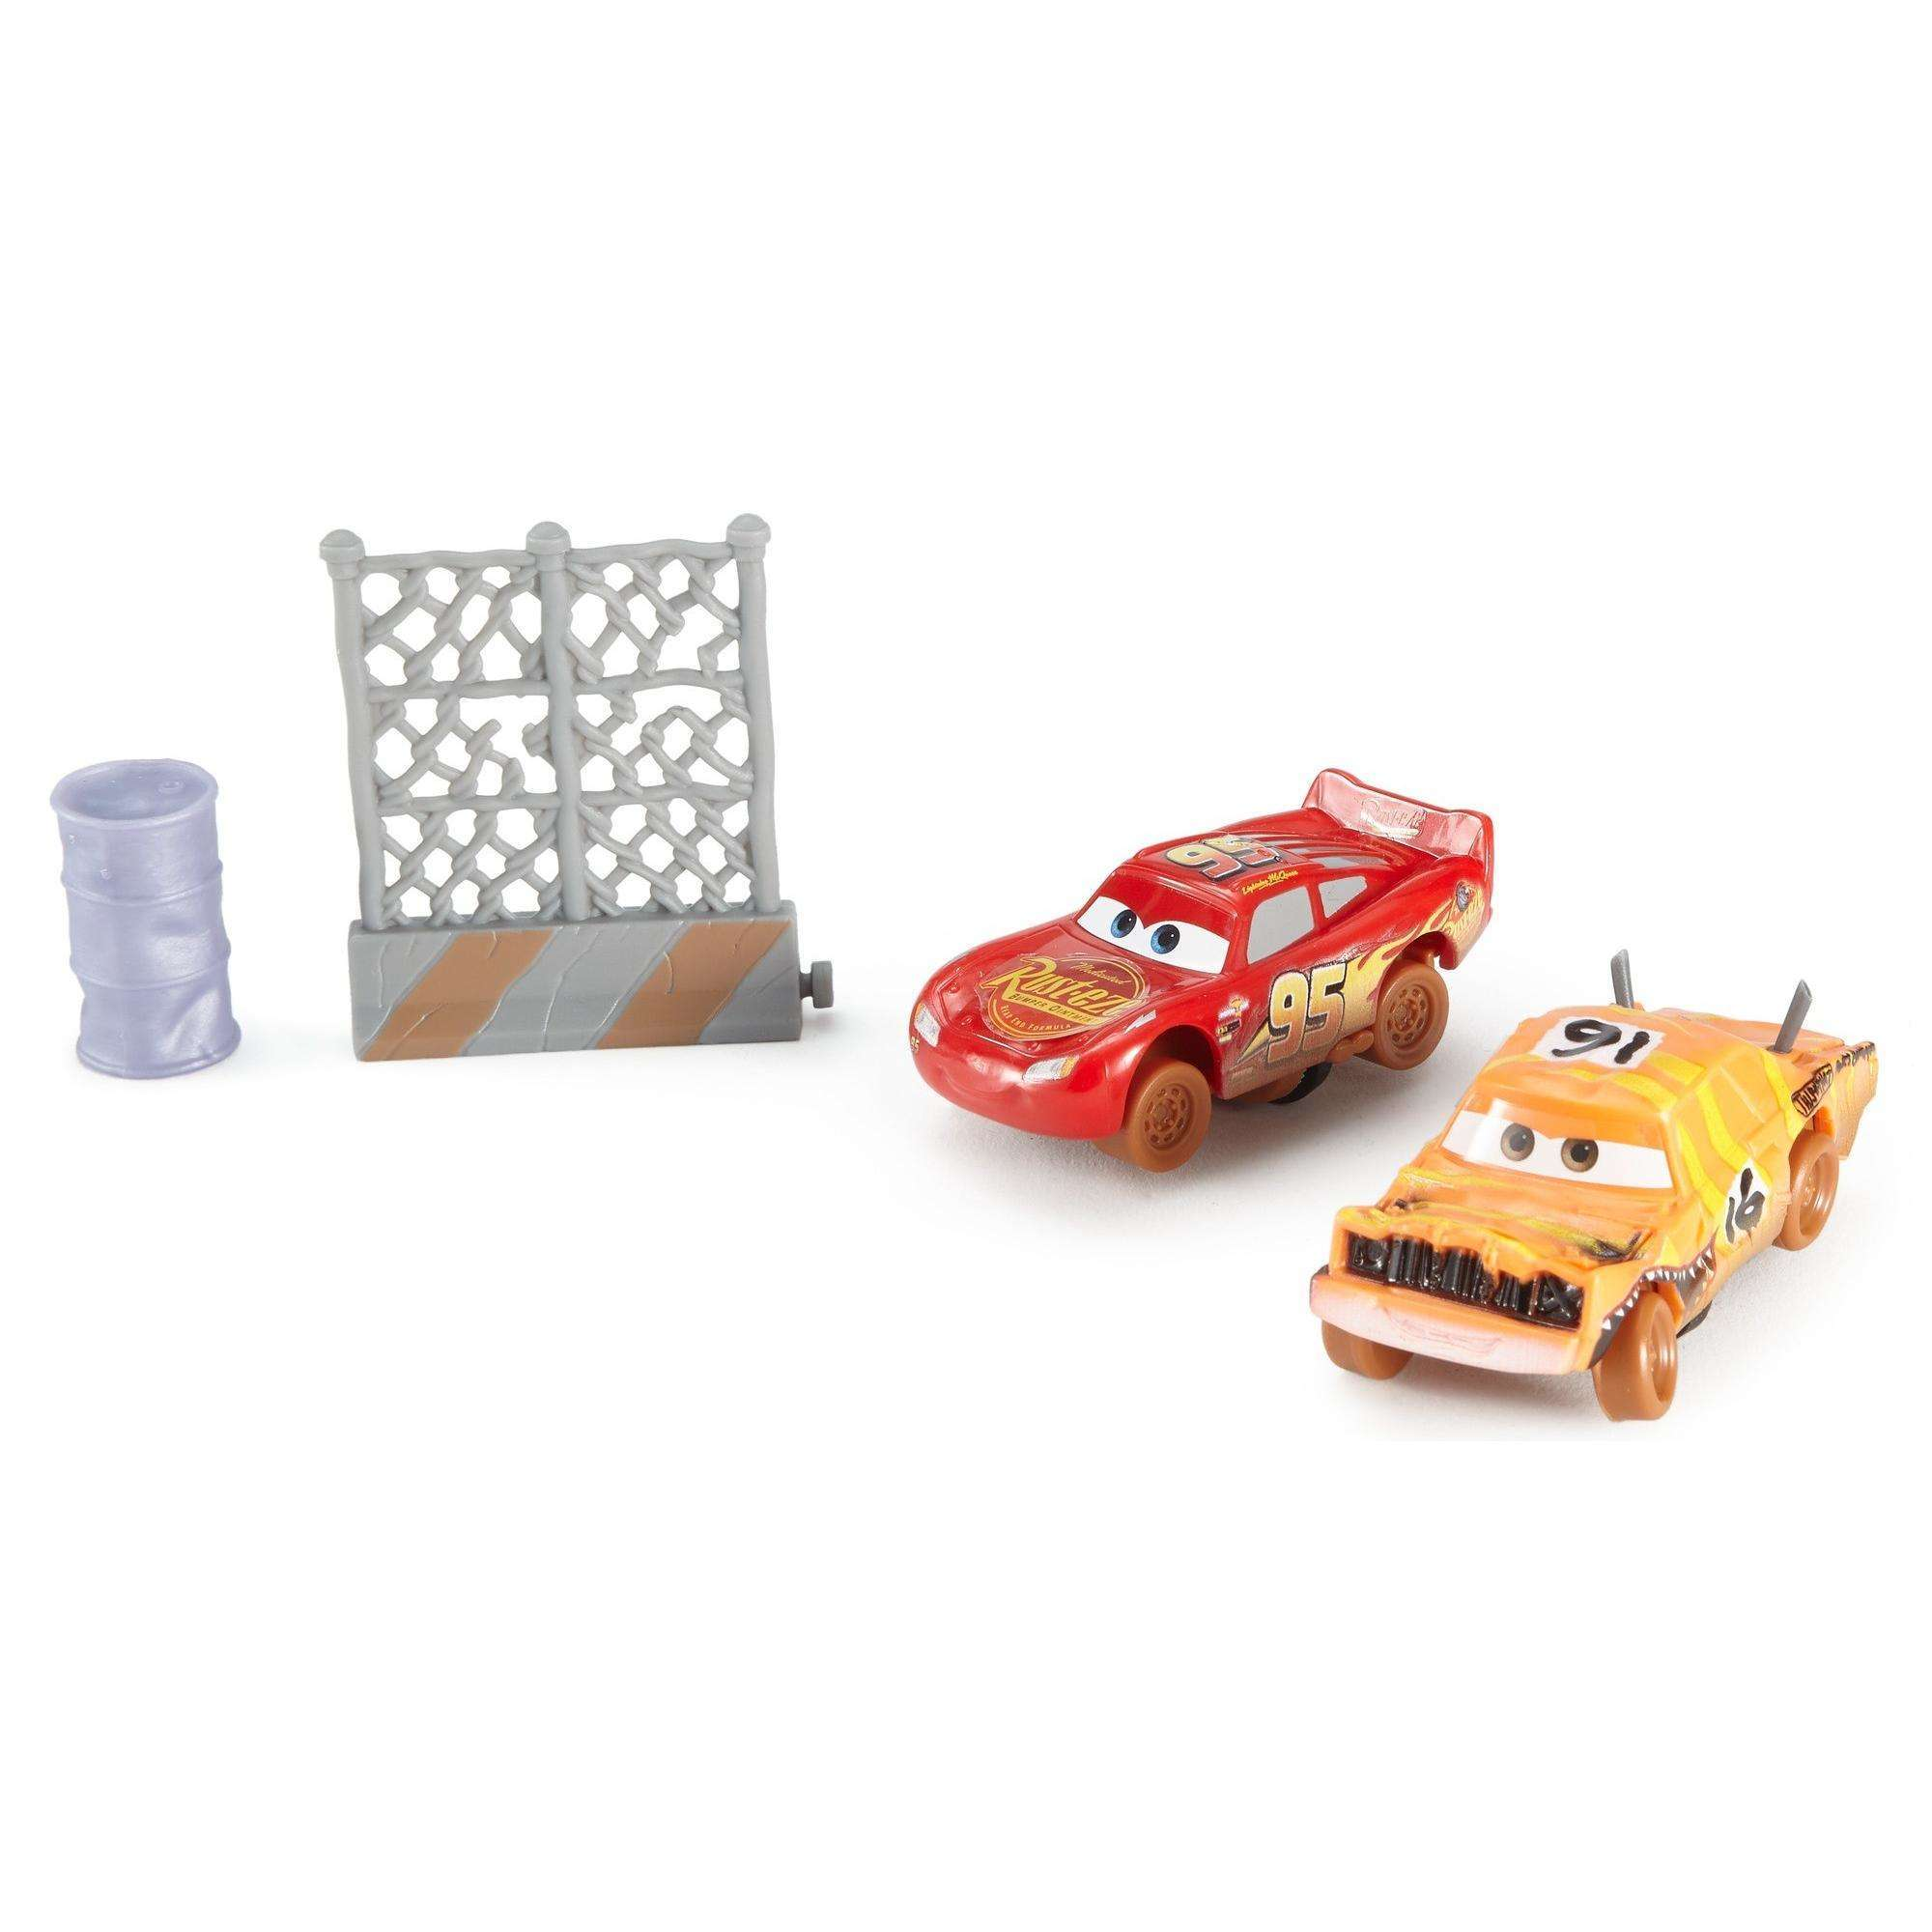 Disney/Pixar Cars 3 Crazy 8 Crashers Pushover & Lightning McQueen Vehicle 2-pack